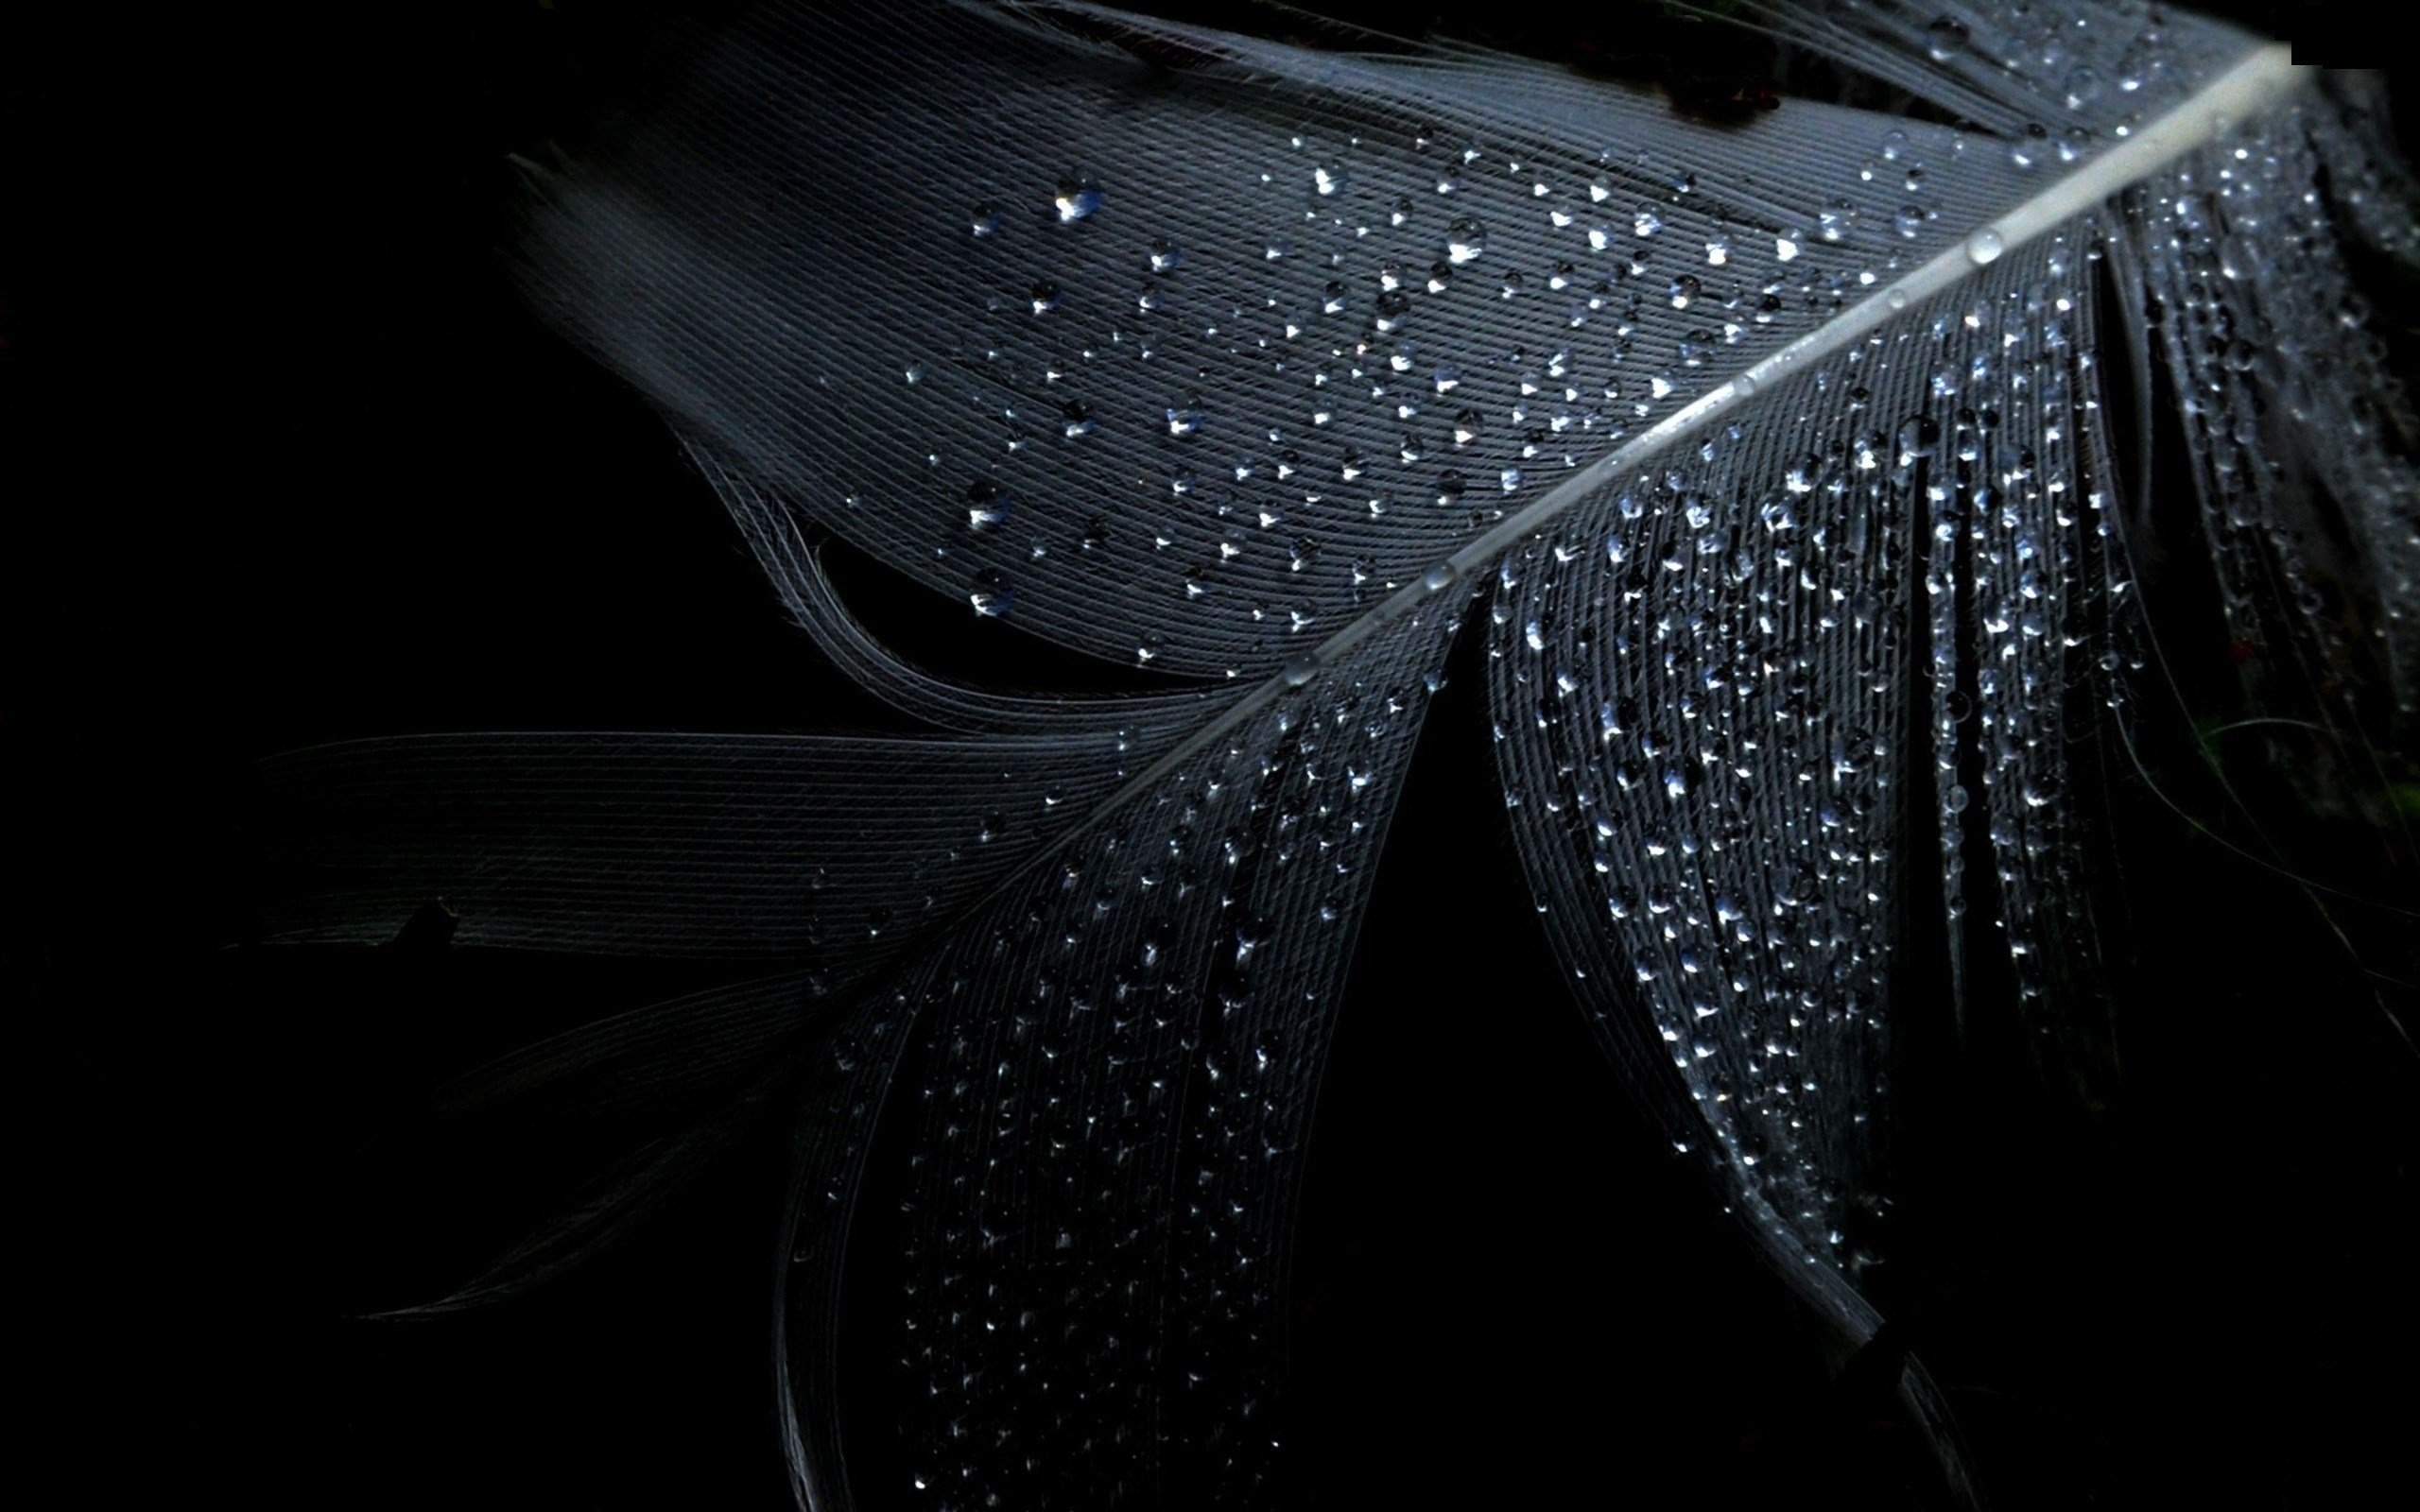 Home Water Filter >> Wet Water Drops Black Background Wallpaper [2560x1600]